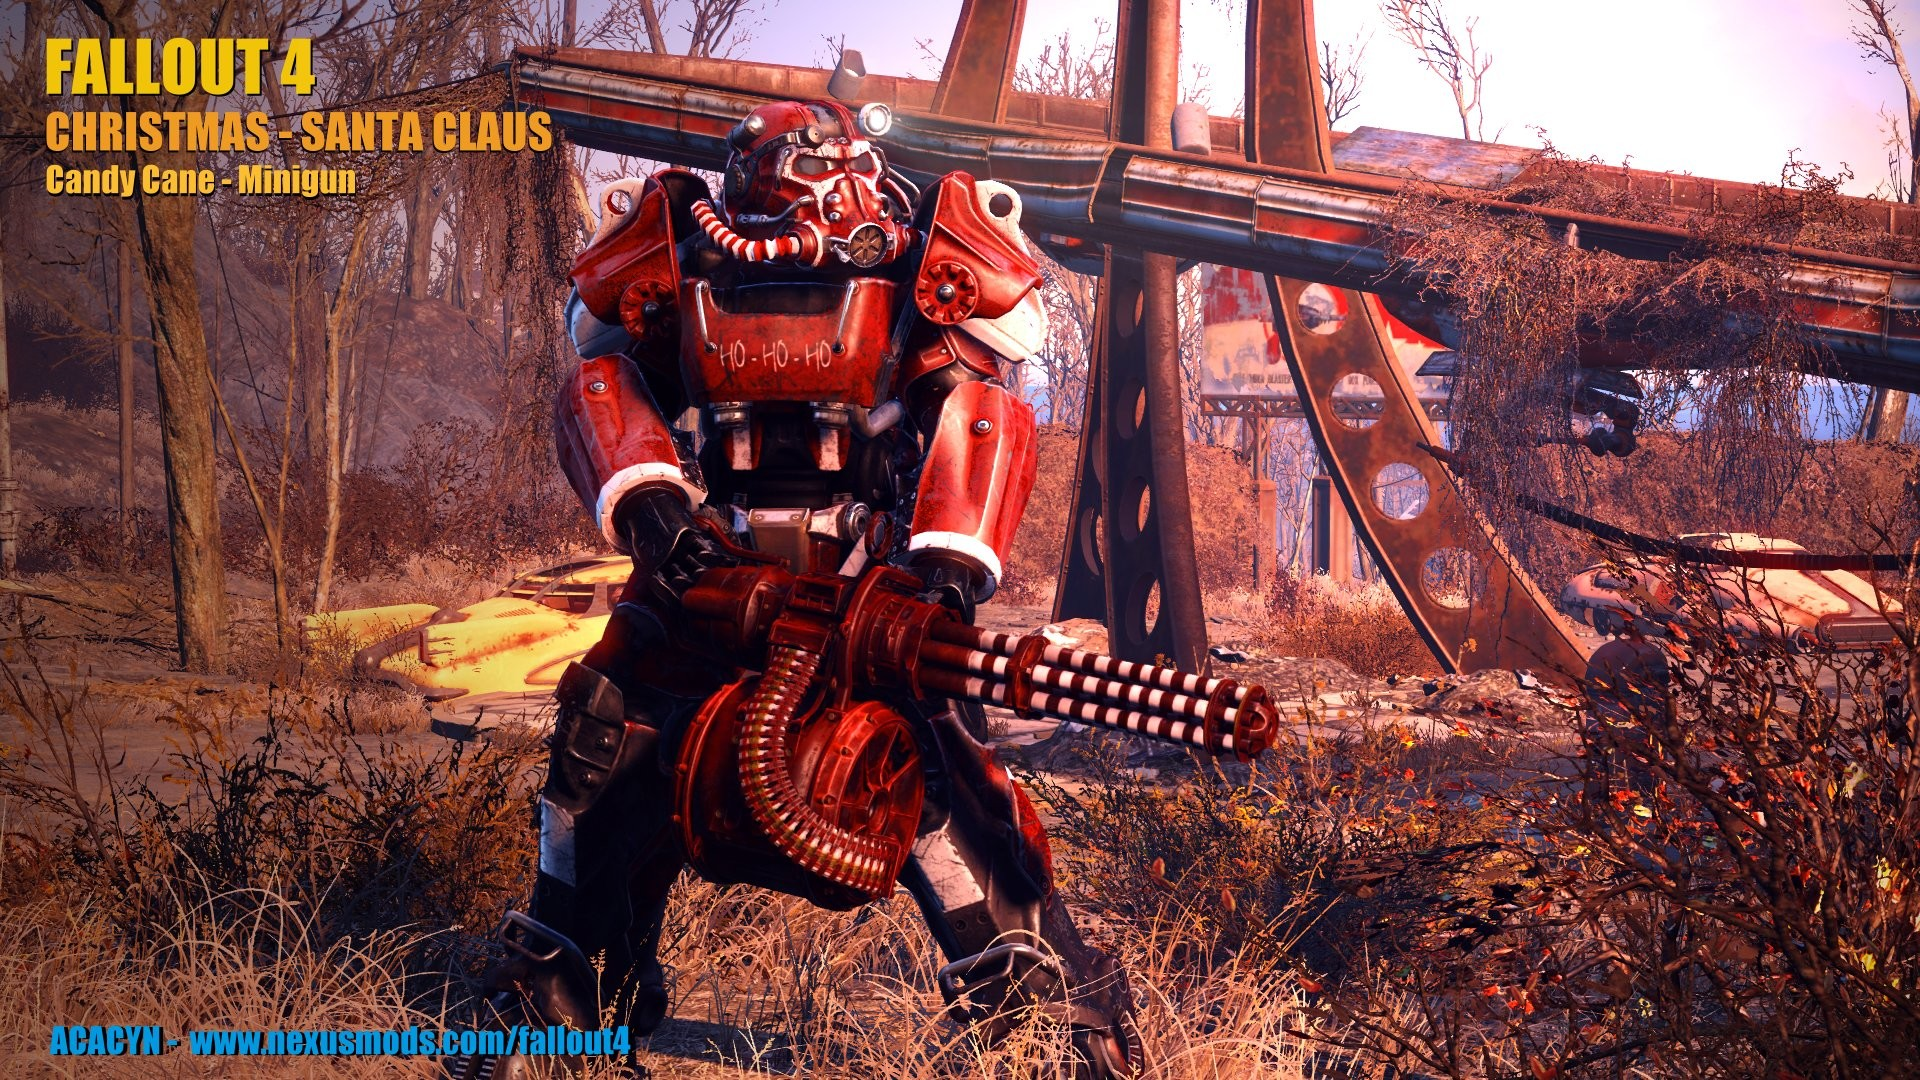 Christmas – Santa Claus Power Armor at Fallout 4 Nexus – Mods and community